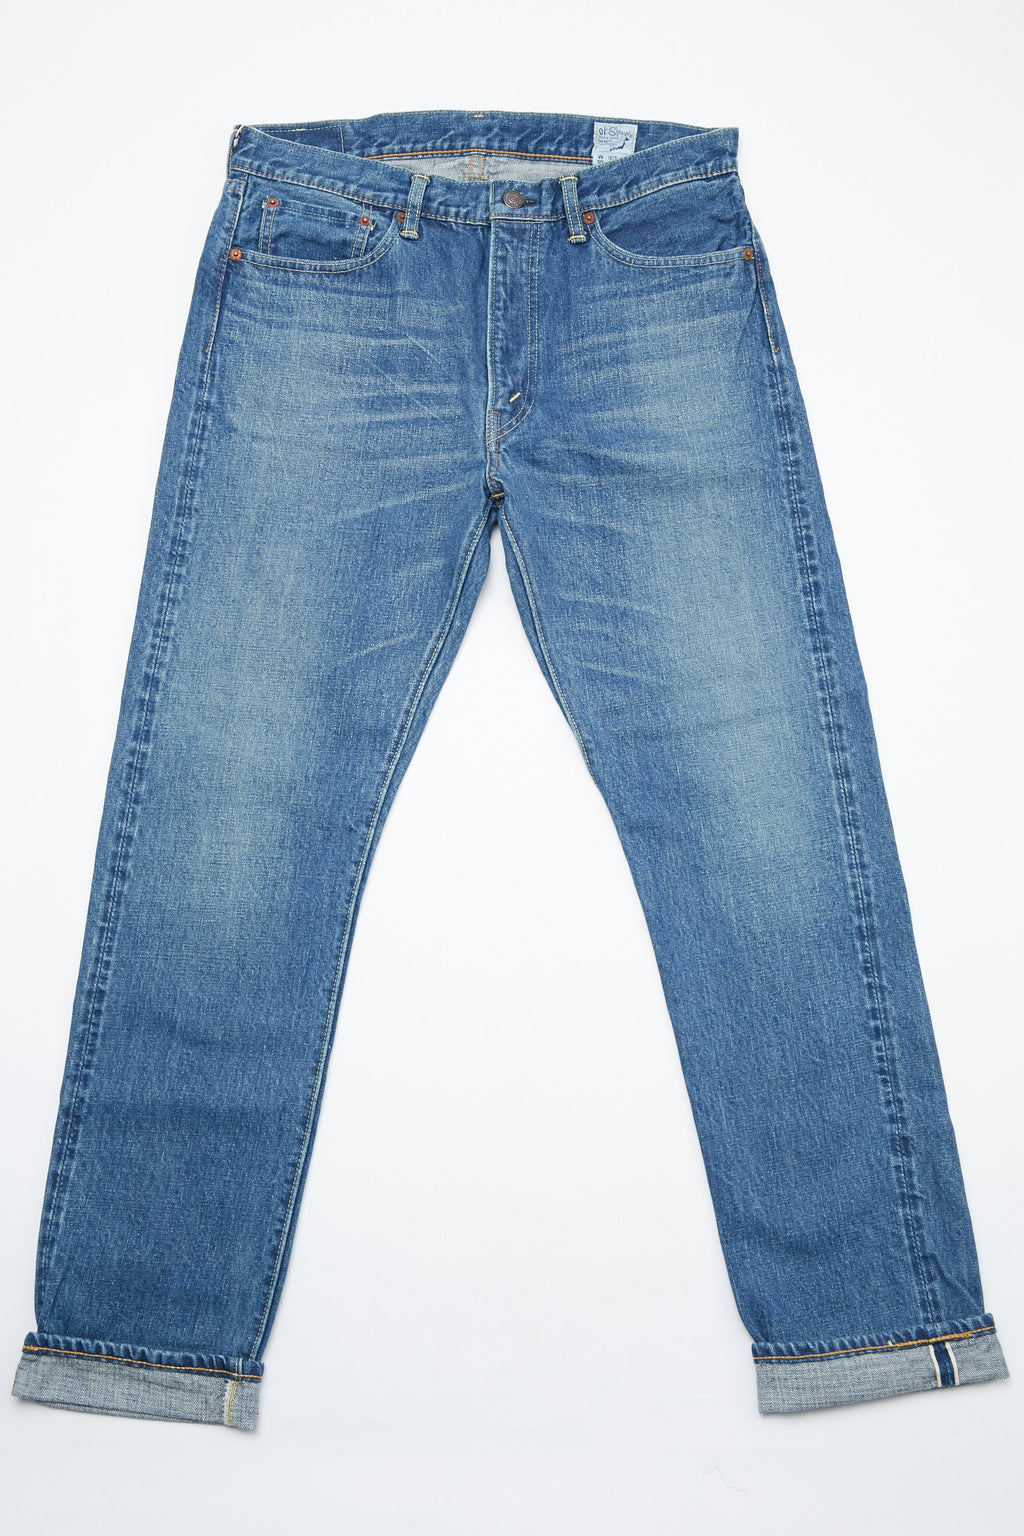 orSlow 107 Ivy Fit Slim Jean - 2 Year Wash